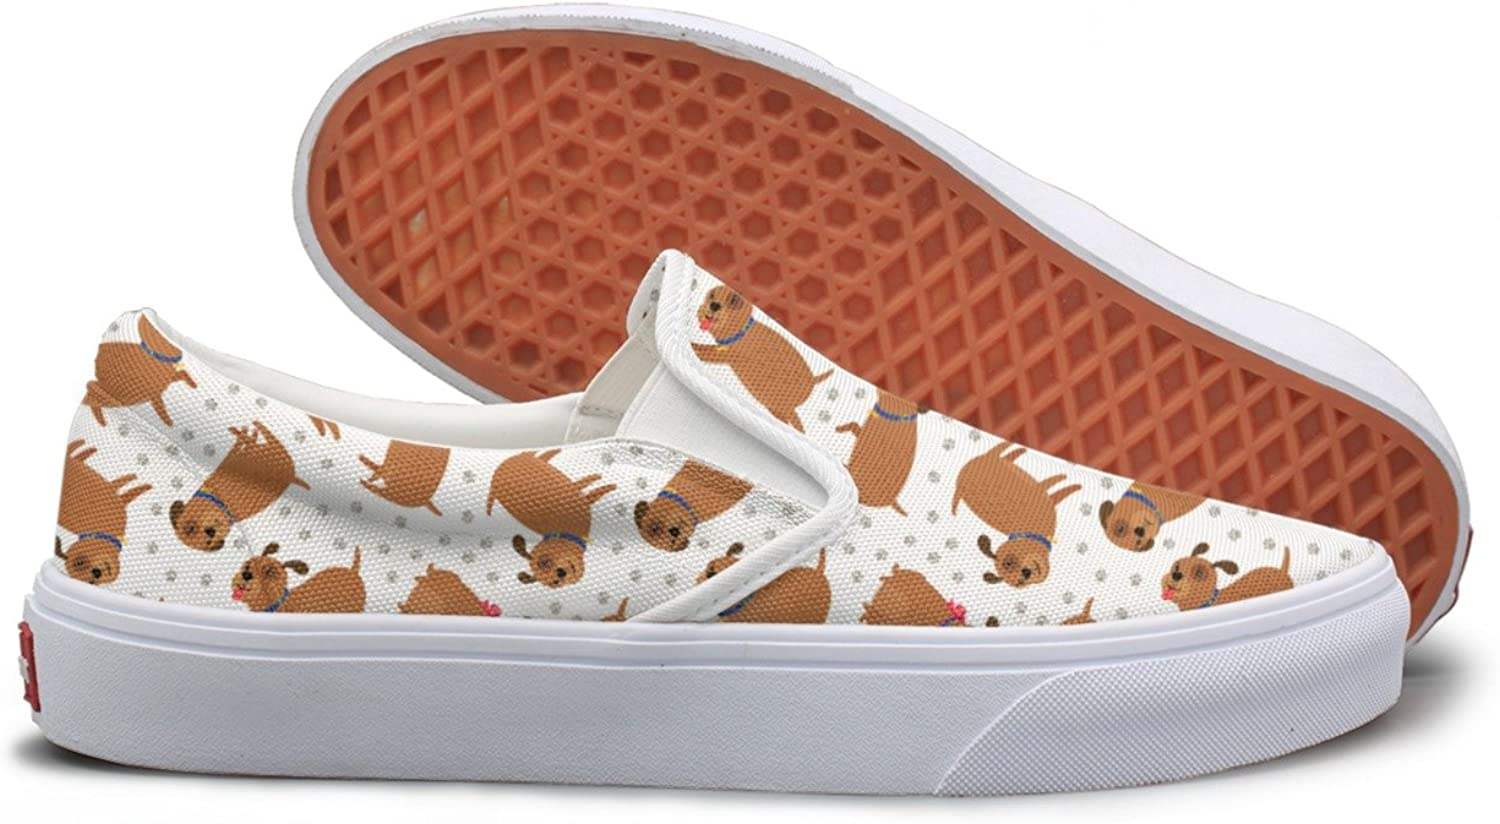 Tongue Out Dogs Puppy Paws Footprints Walking Sneakers For Women